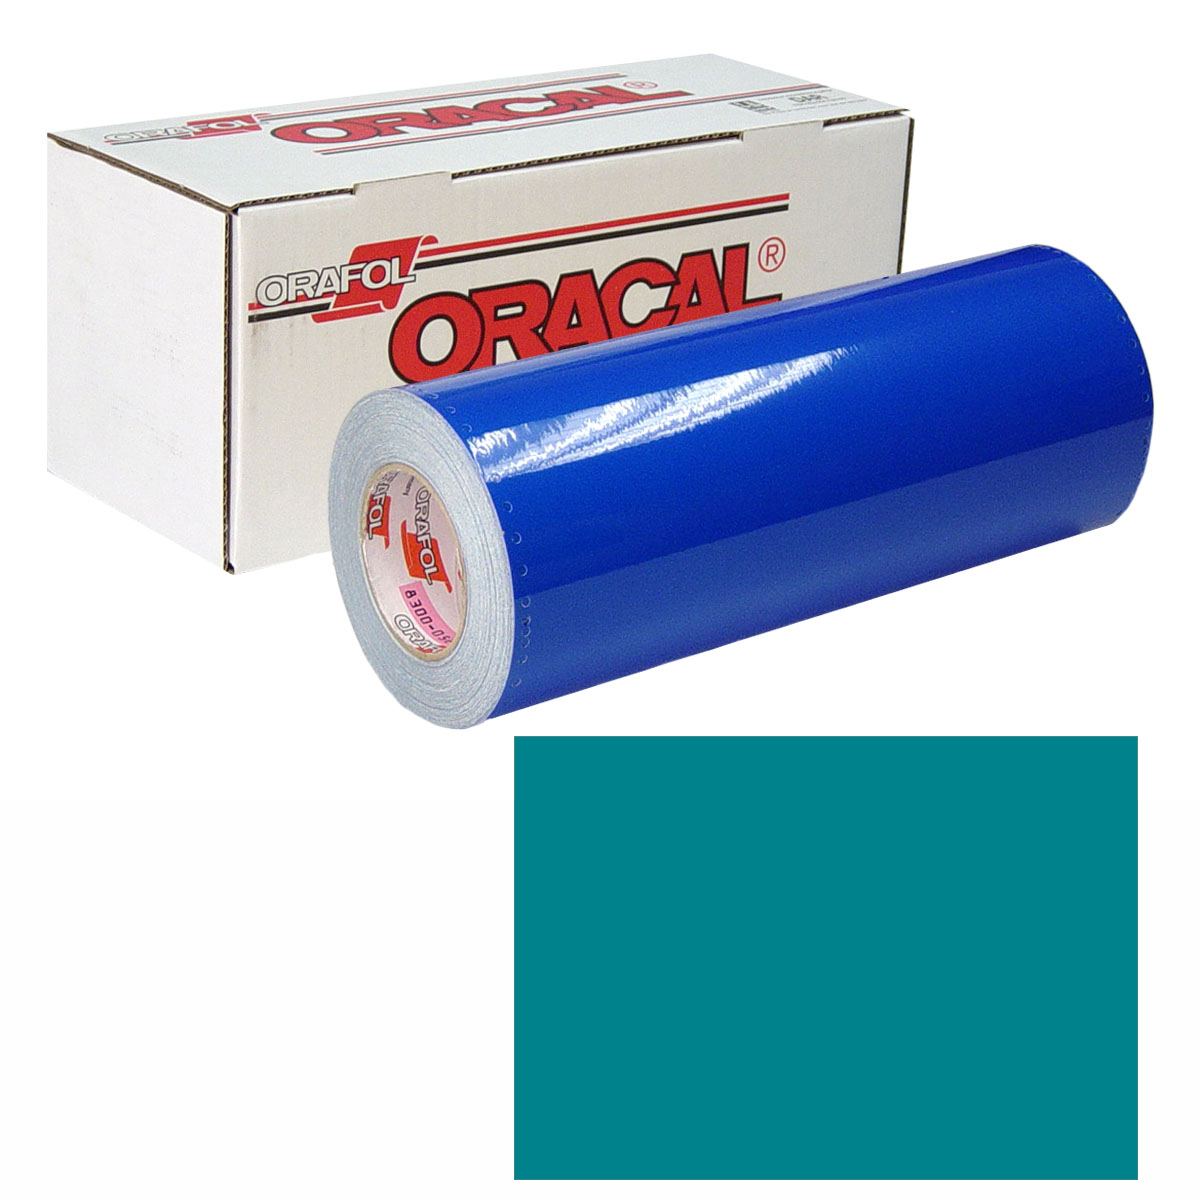 ORACAL 631 15In X 10Yd 066 Turquoise Blue